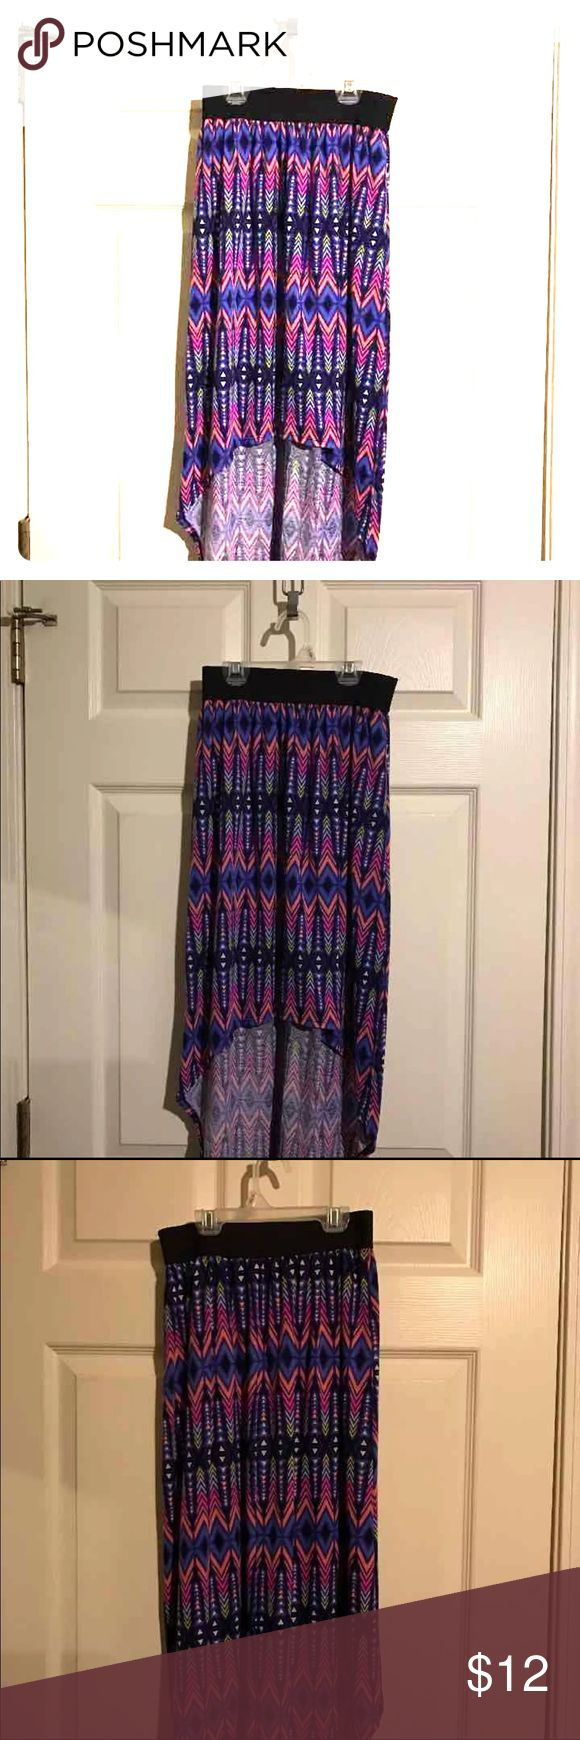 Cute Hi-Lo Tribal Skirt Very comfy hi-low skirt. Elastic waistband makes it flattering for almost all sizes, S, M or L. Aztec print in purple, pink and black. Great dress for any occasion! Skirts